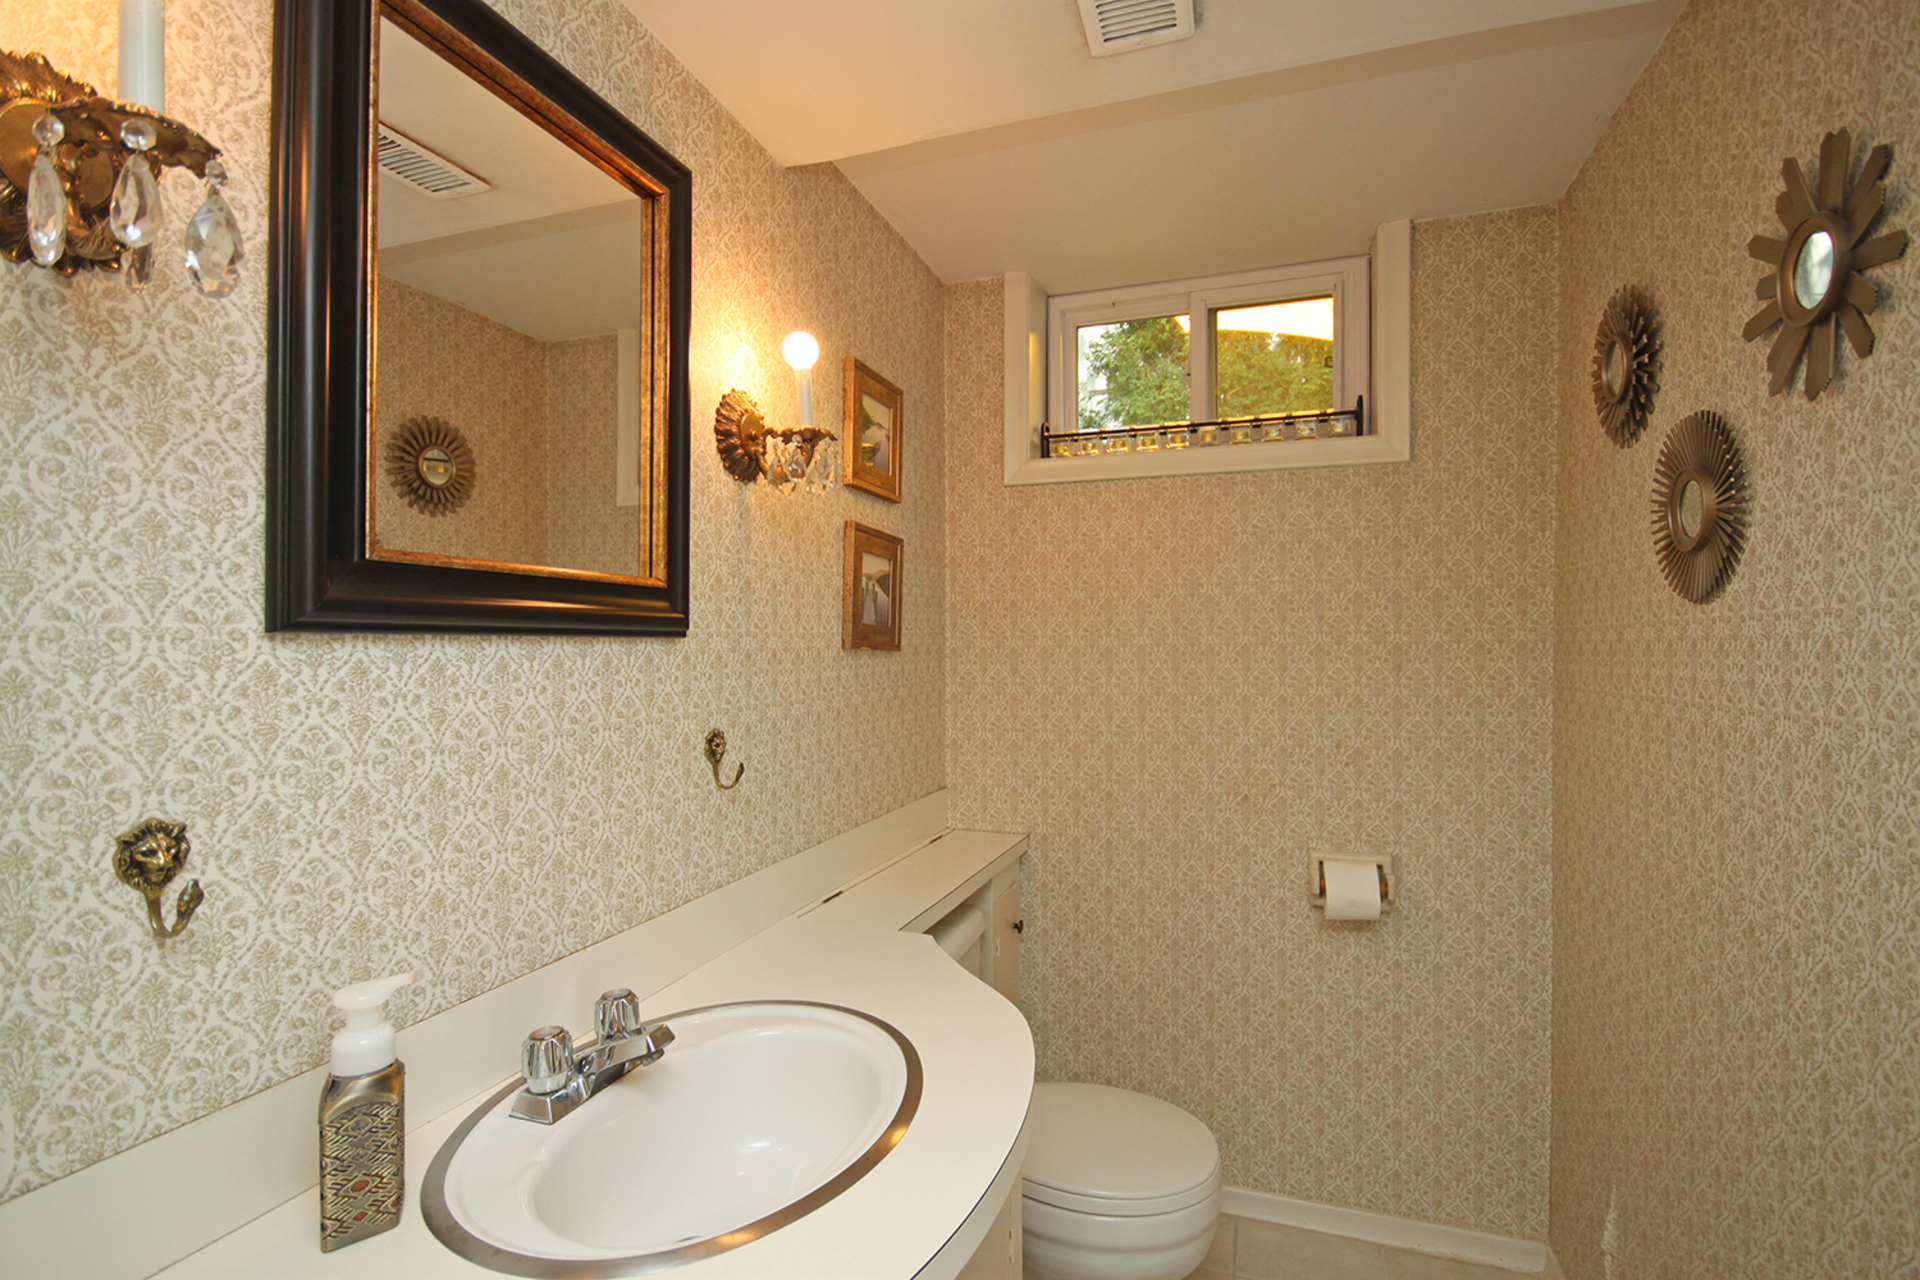 2 Piece Bathroom at 25 Dunlace Drive, St. Andrew-Windfields, Toronto